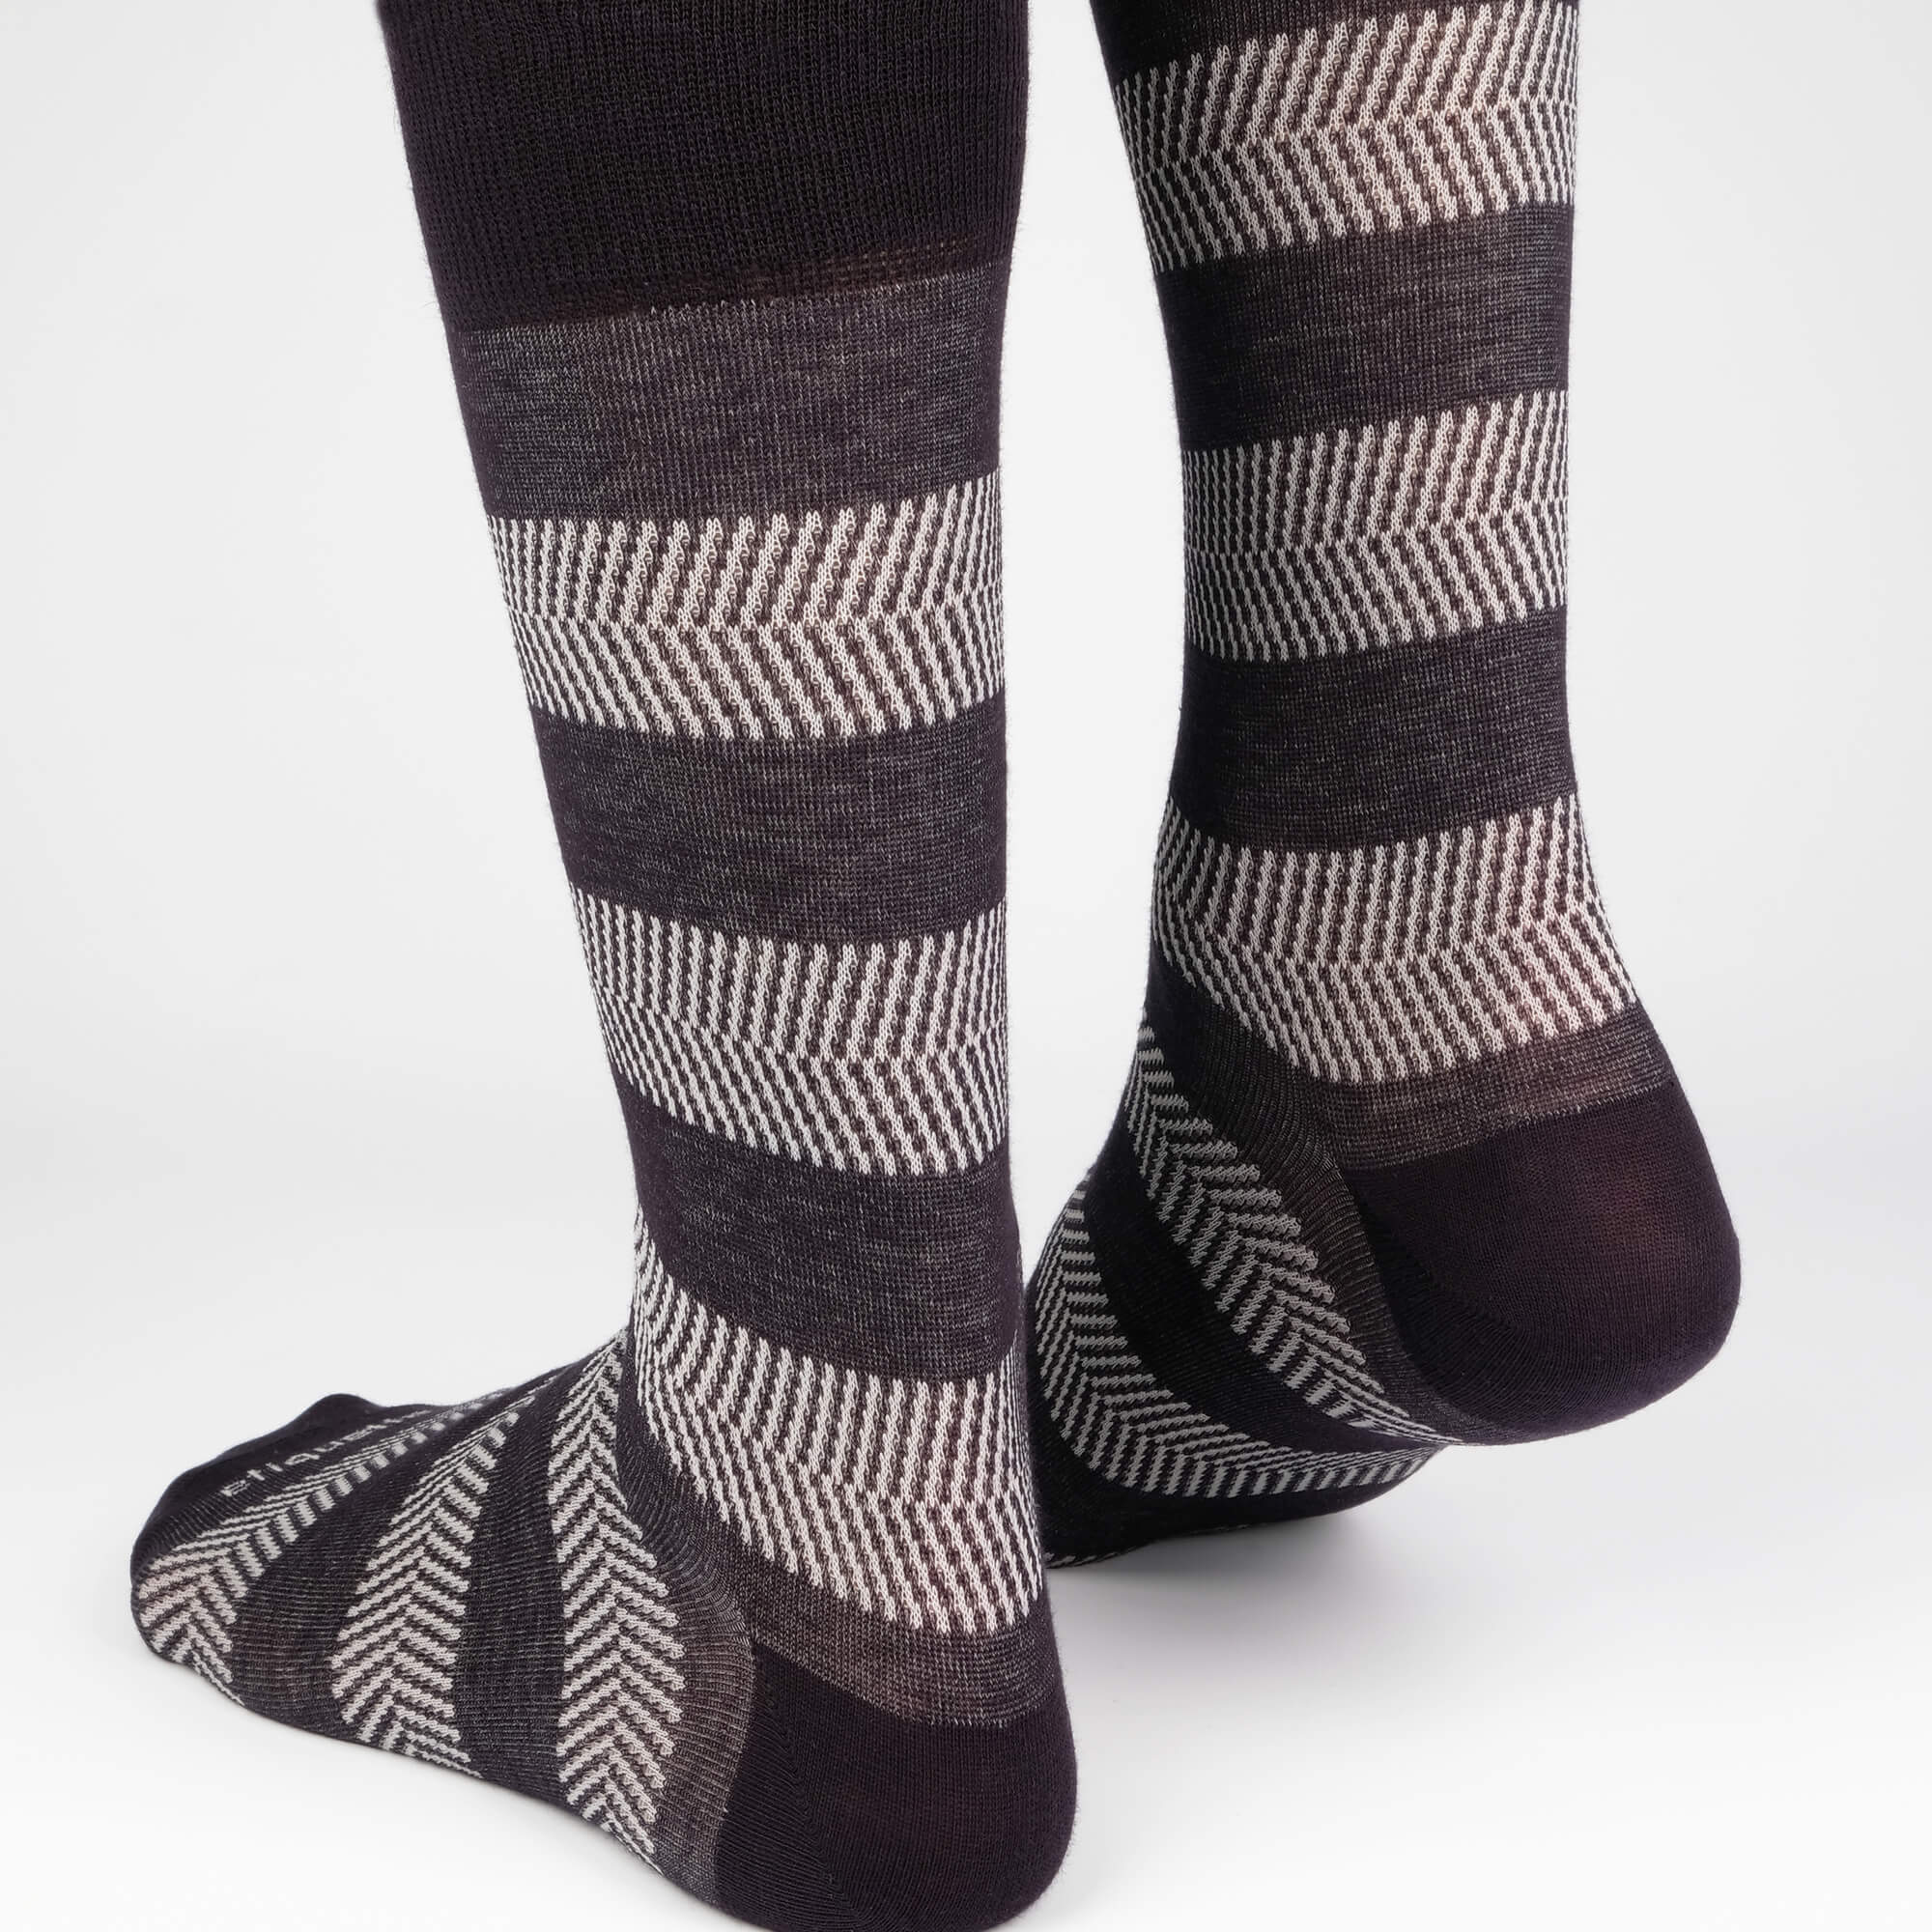 Mens Socks - Herringbone Stripes Men's Socks - Dark Grey⎪Etiquette Clothiers